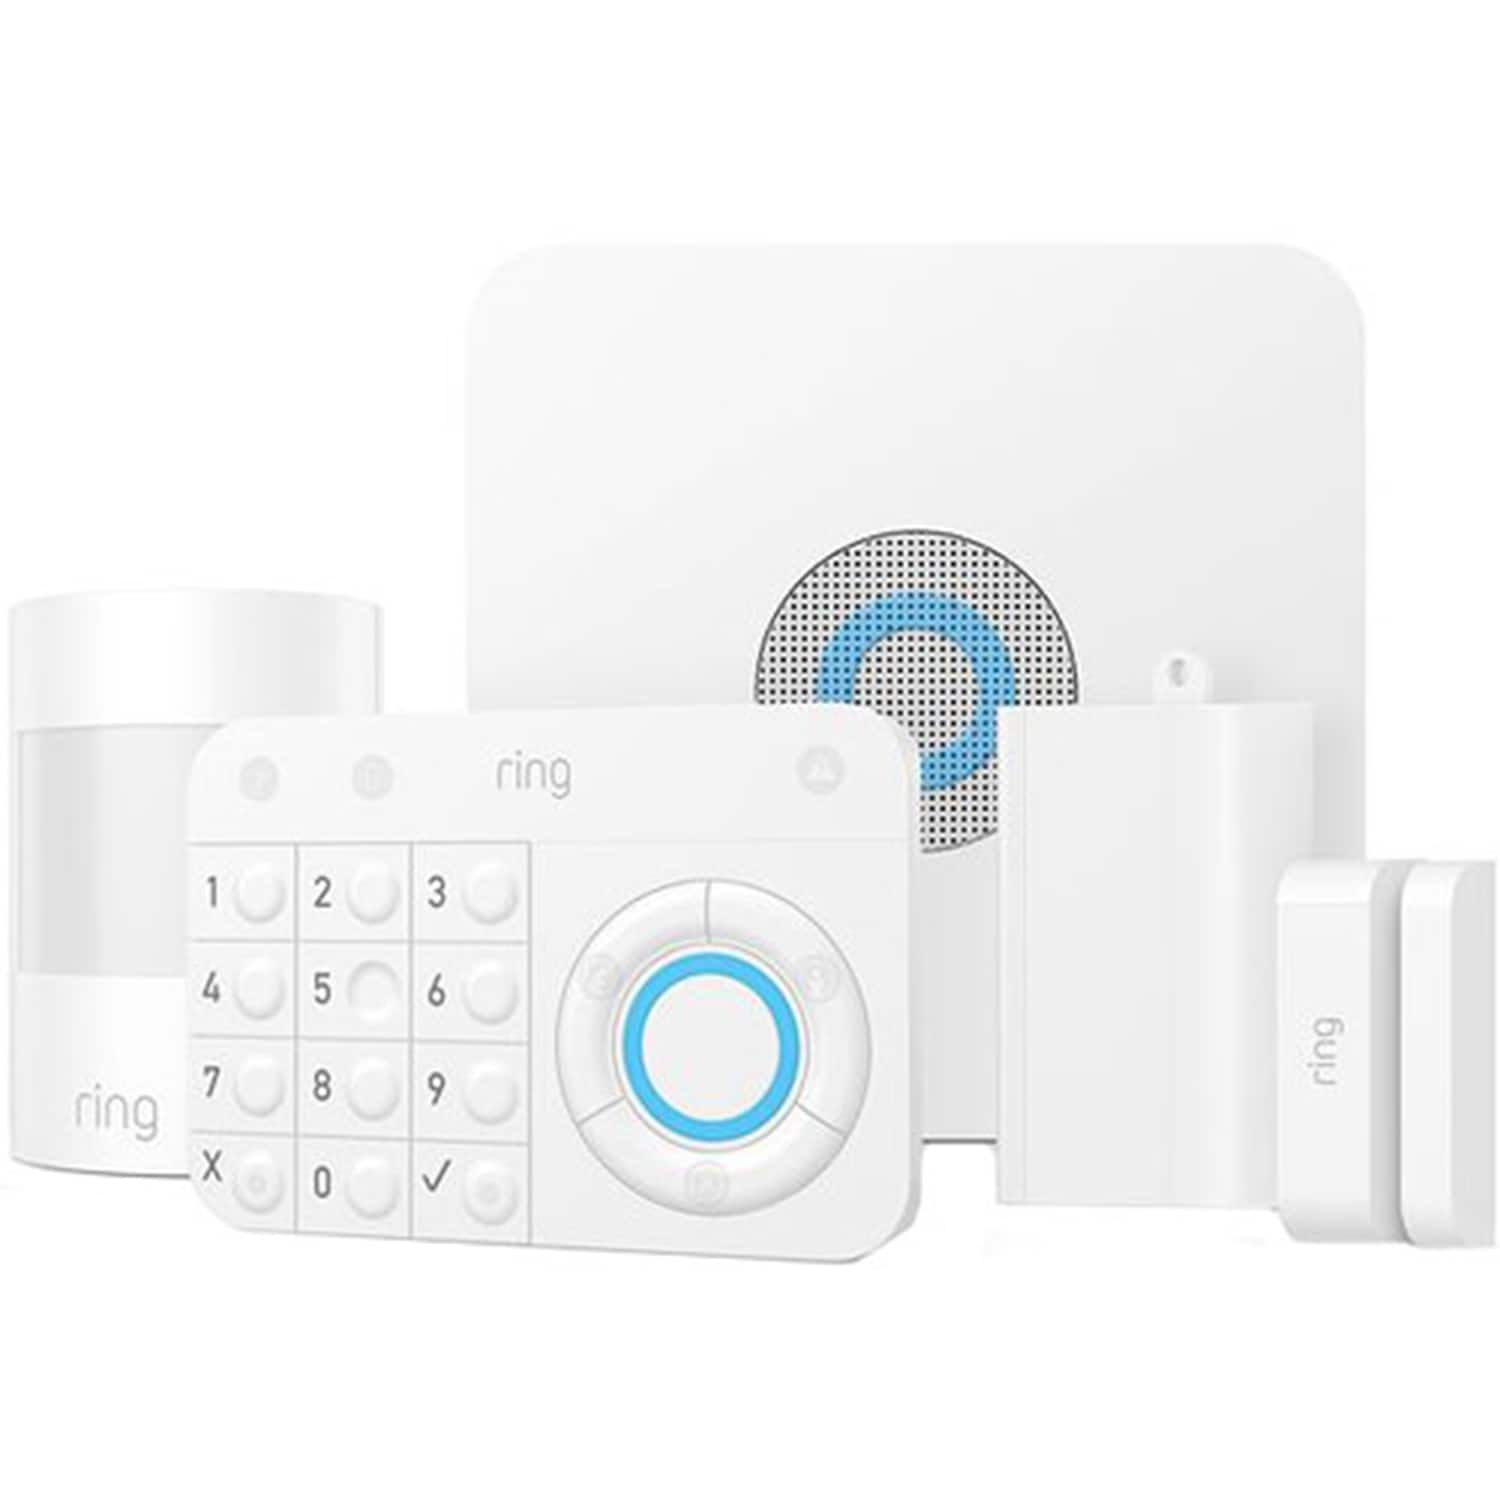 Ring 5-Piece Alarm House Security Kit (White) - $107.99 After 20% New Customers Coupon + Free Shipping